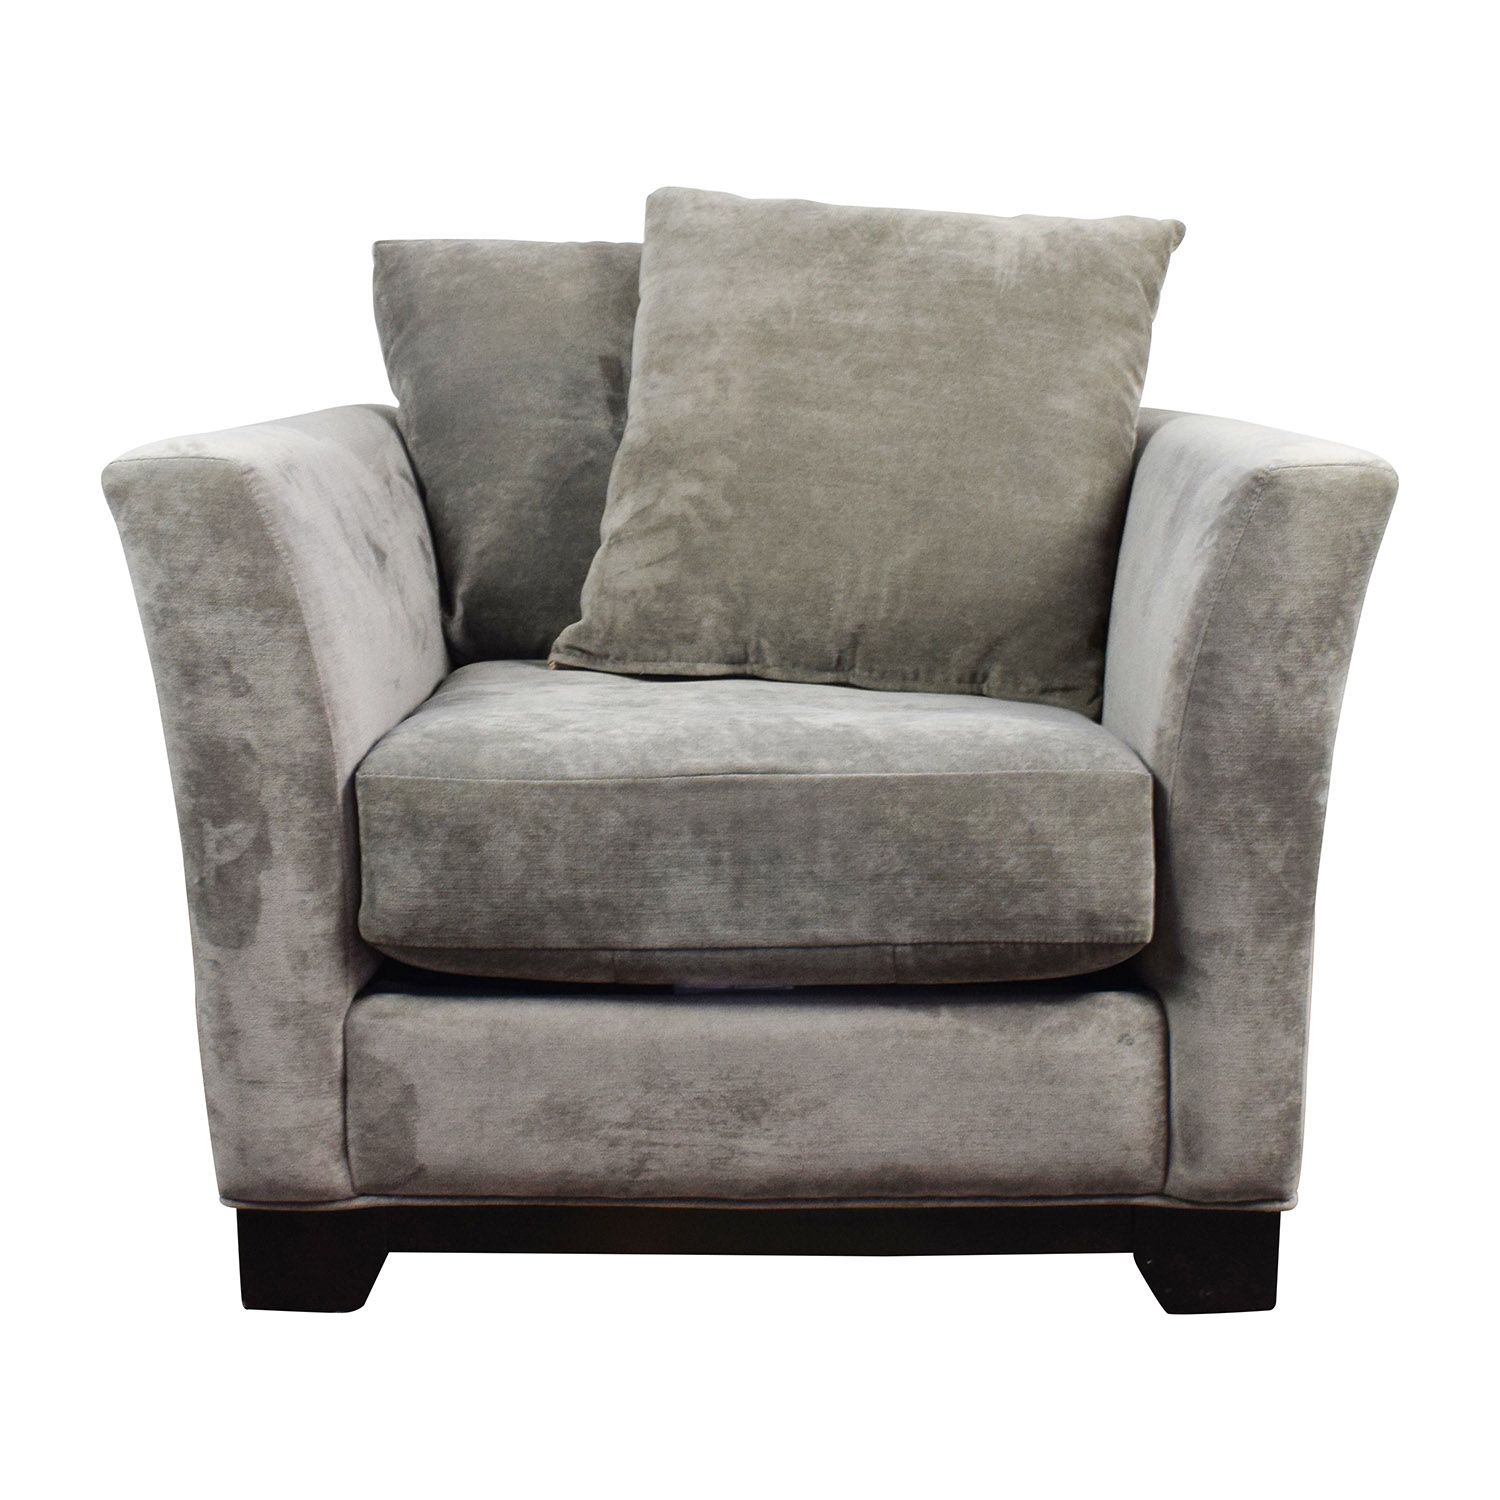 Macys Roselake Accent Chair With Otto: Macy's Macy's Kenton Grey Accent Chair / Chairs